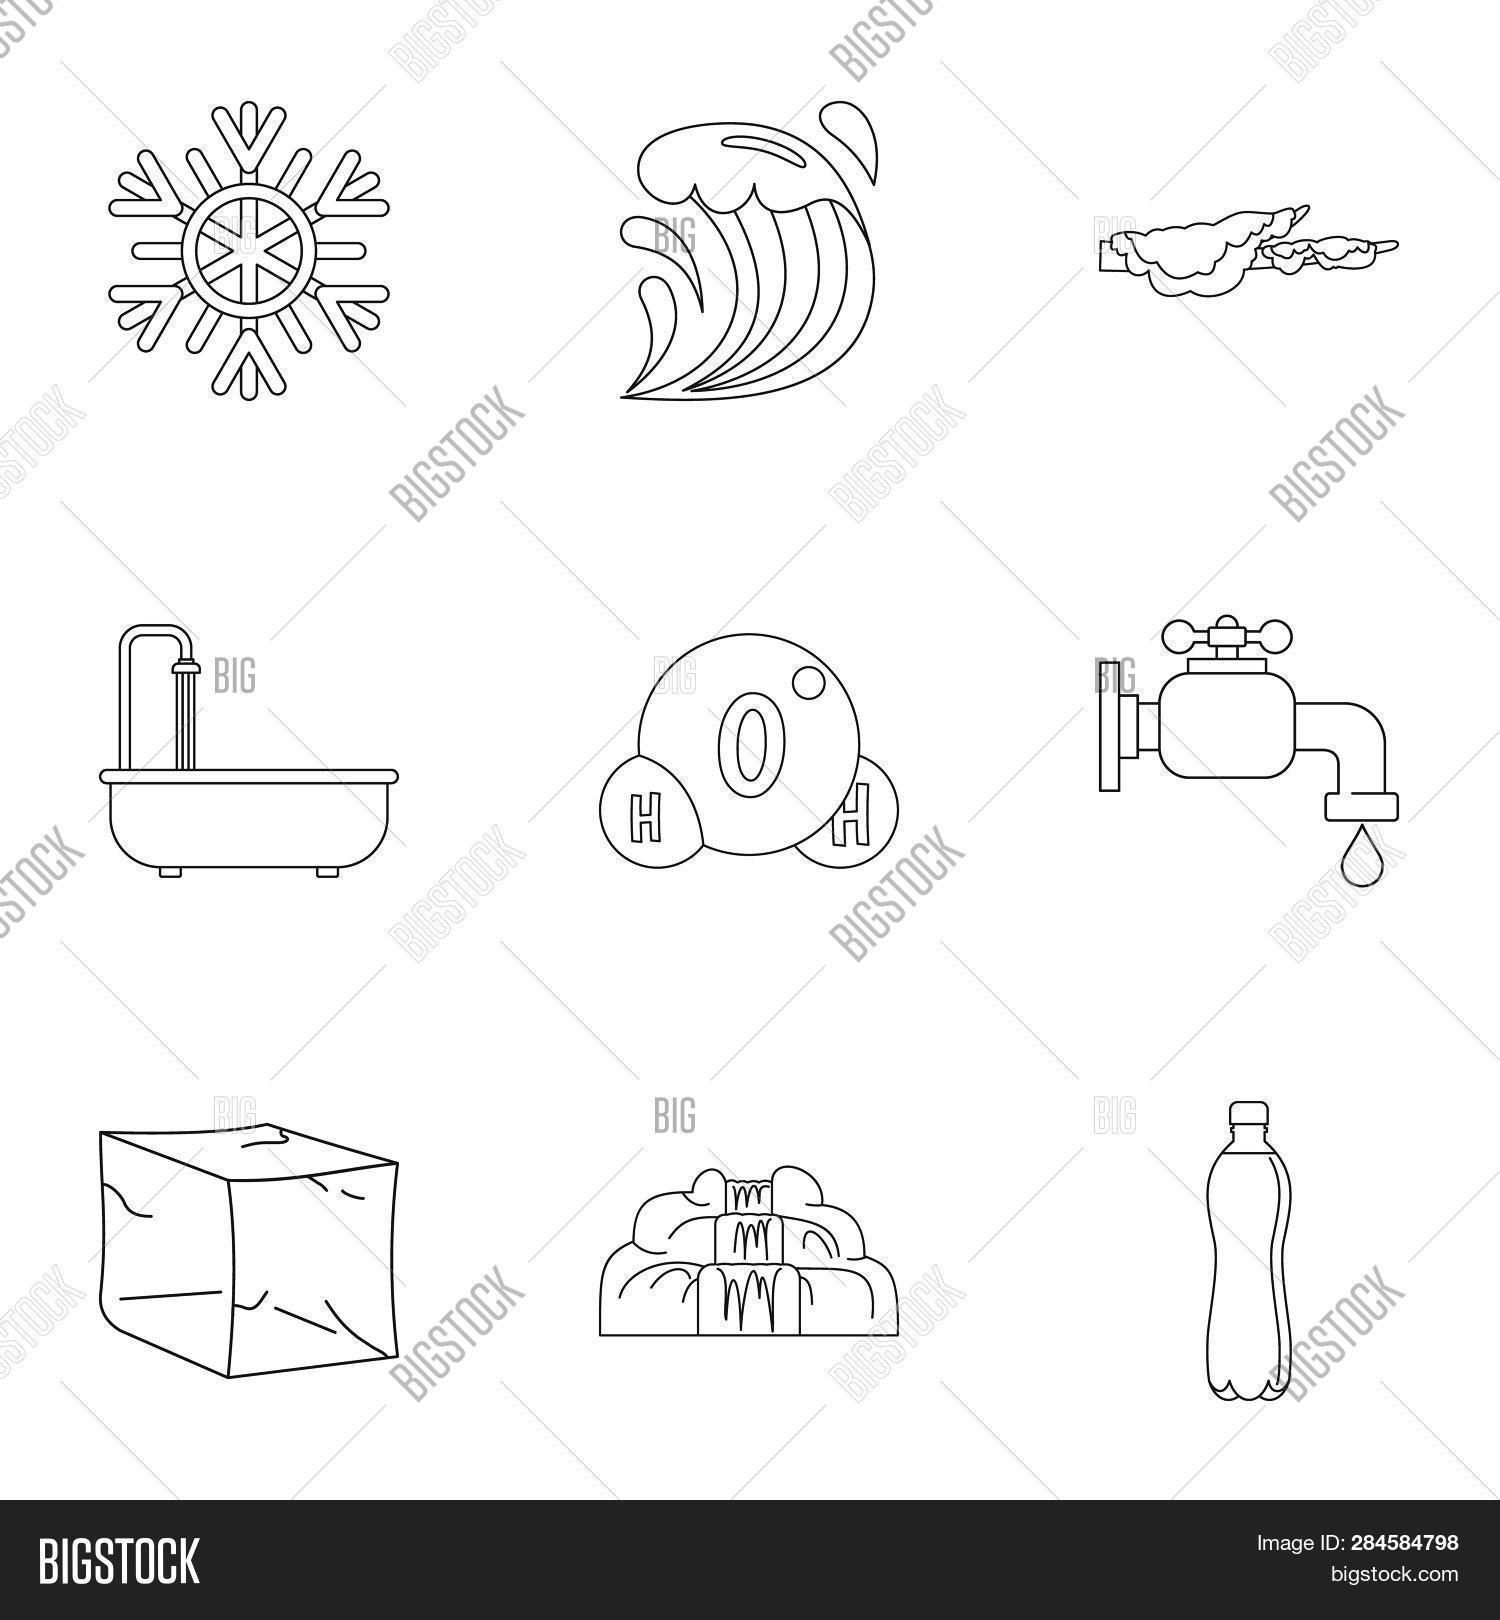 Pure Water Form Icon Image & Photo (Free Trial) | Bigstock